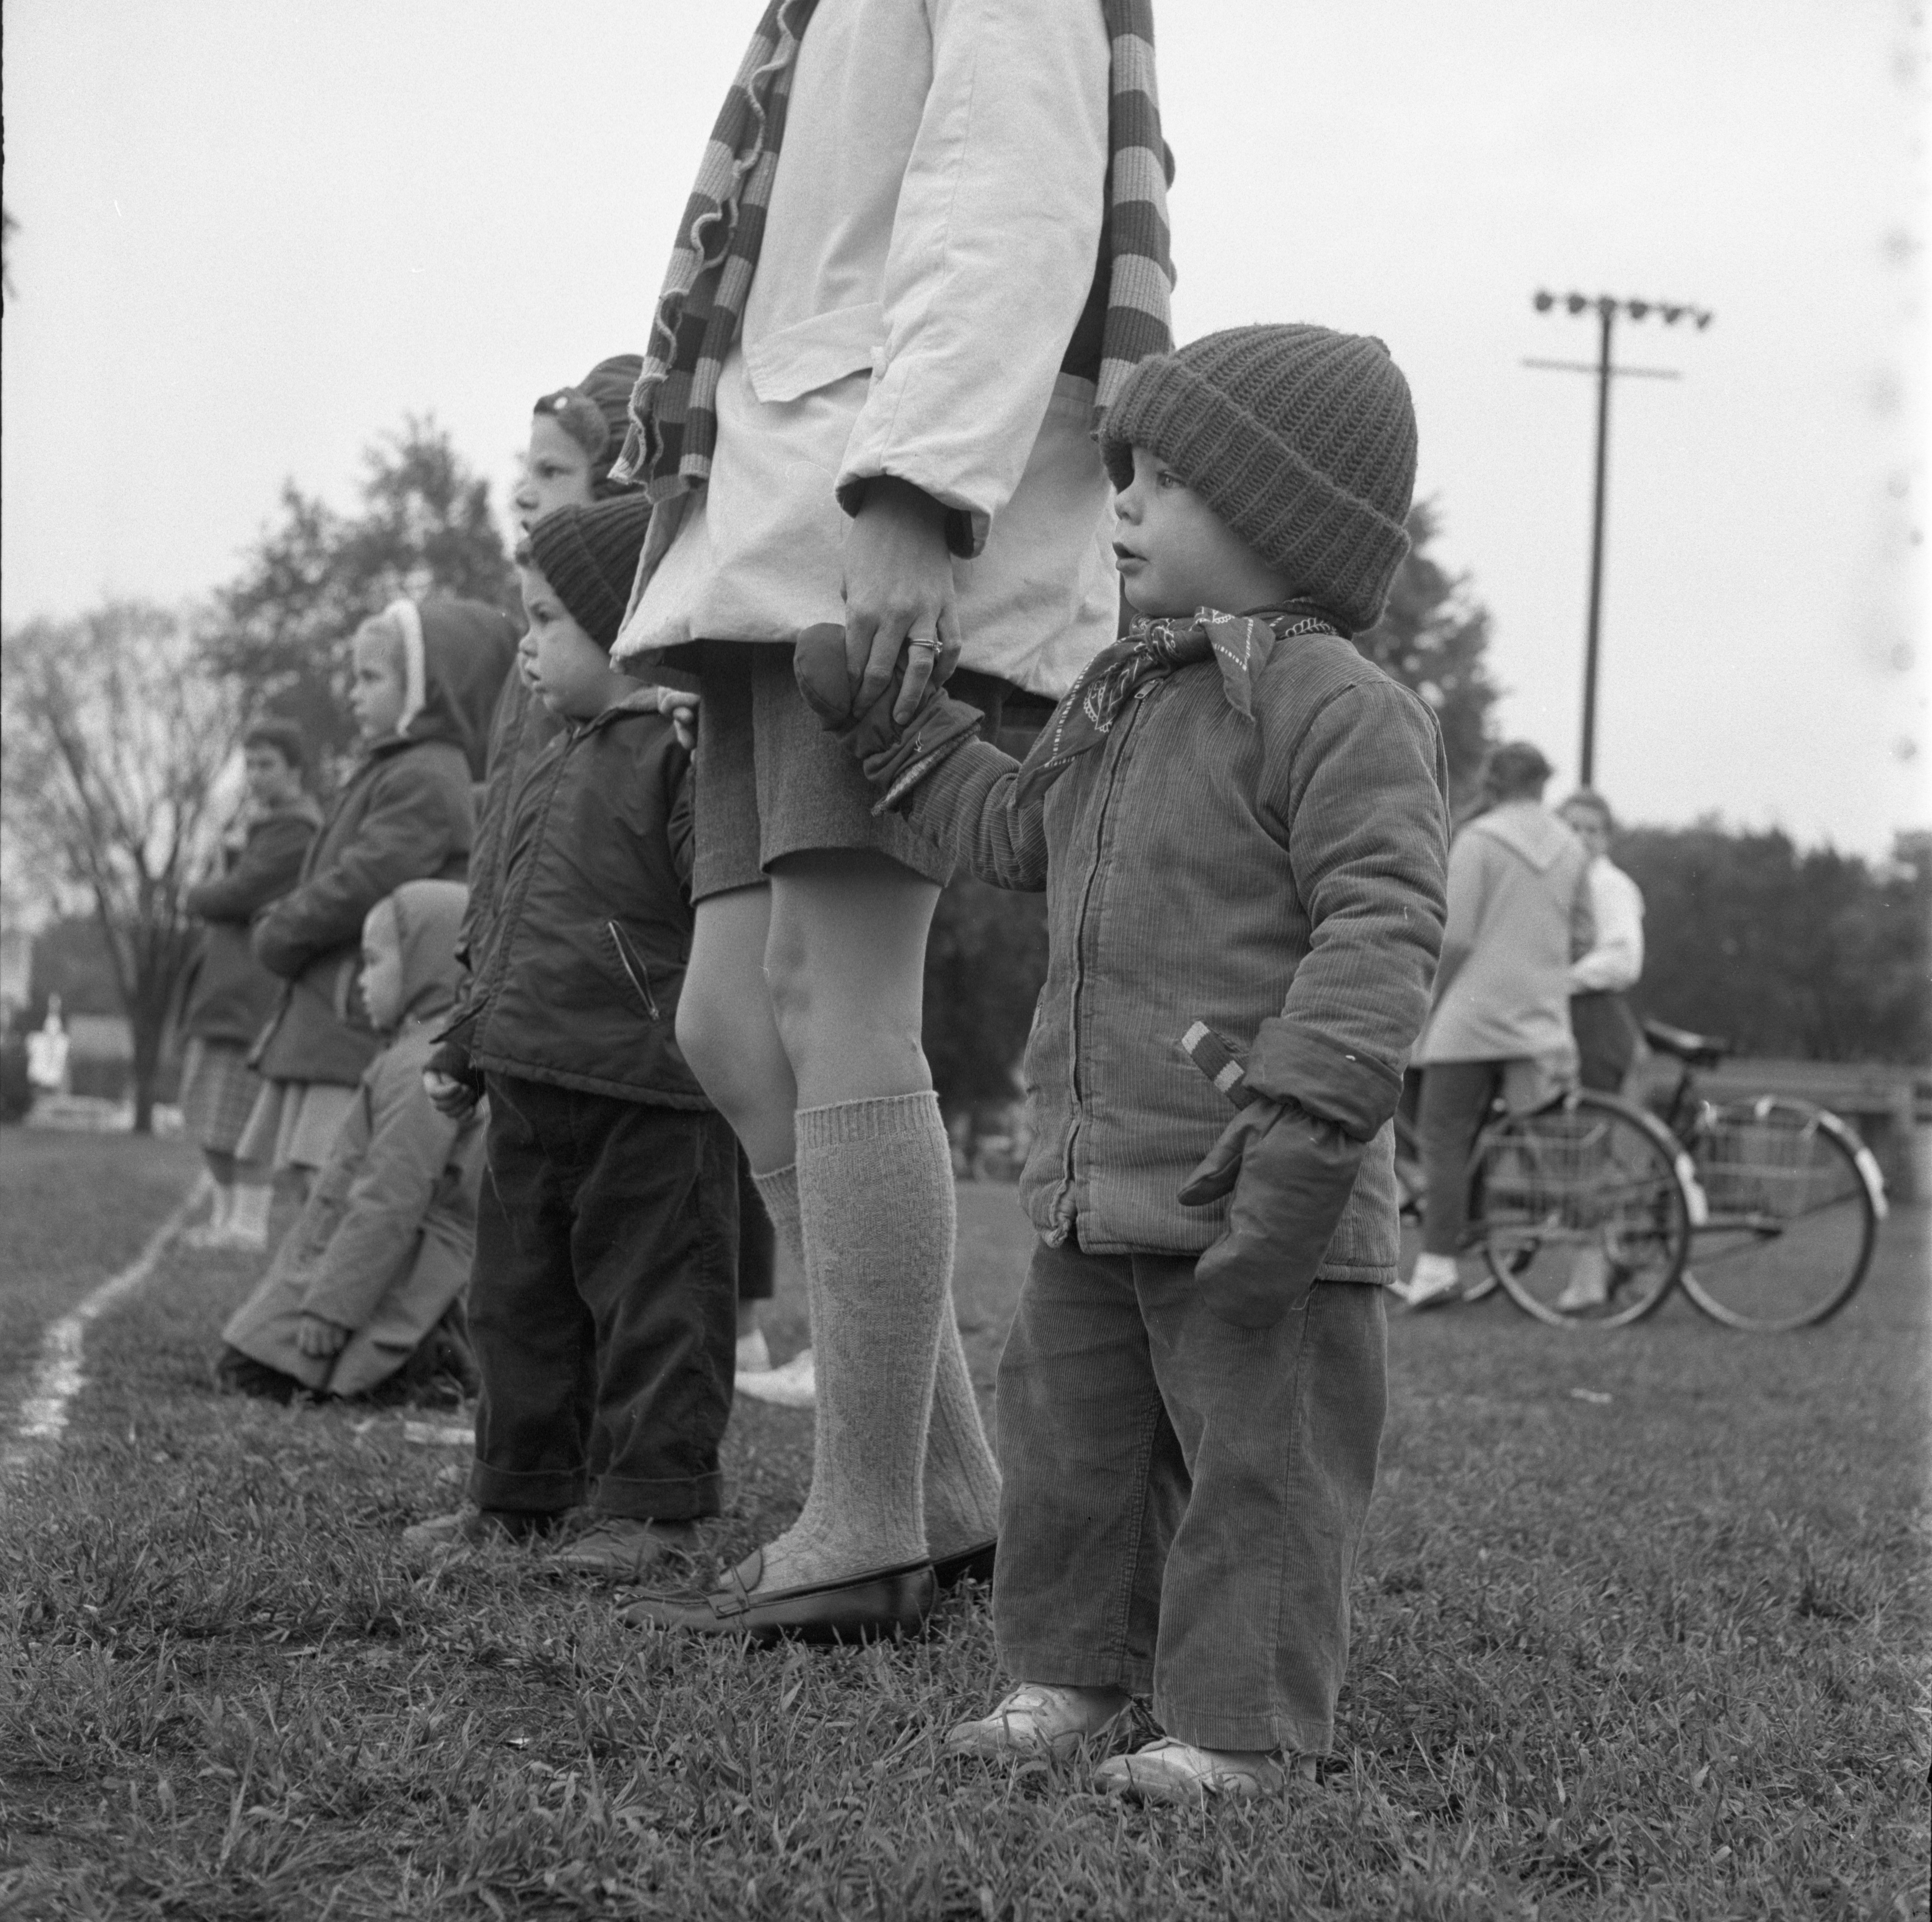 Children Watch The University of Michigan Marching Band Practice, October 1959 image